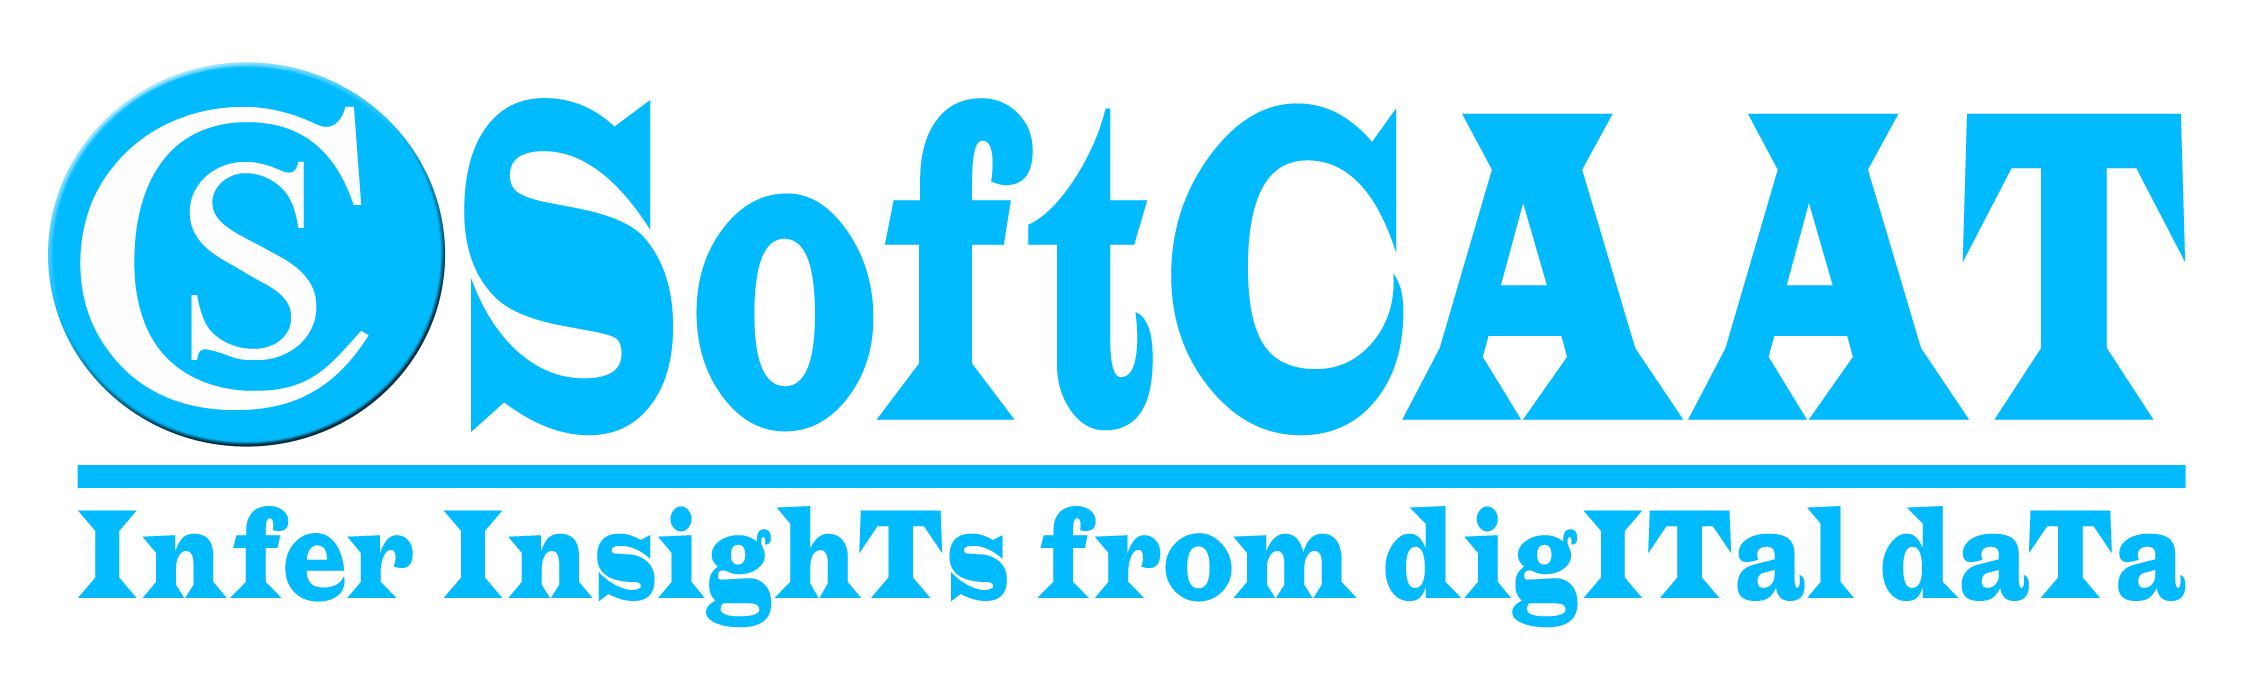 SoftCAAT Software Logo